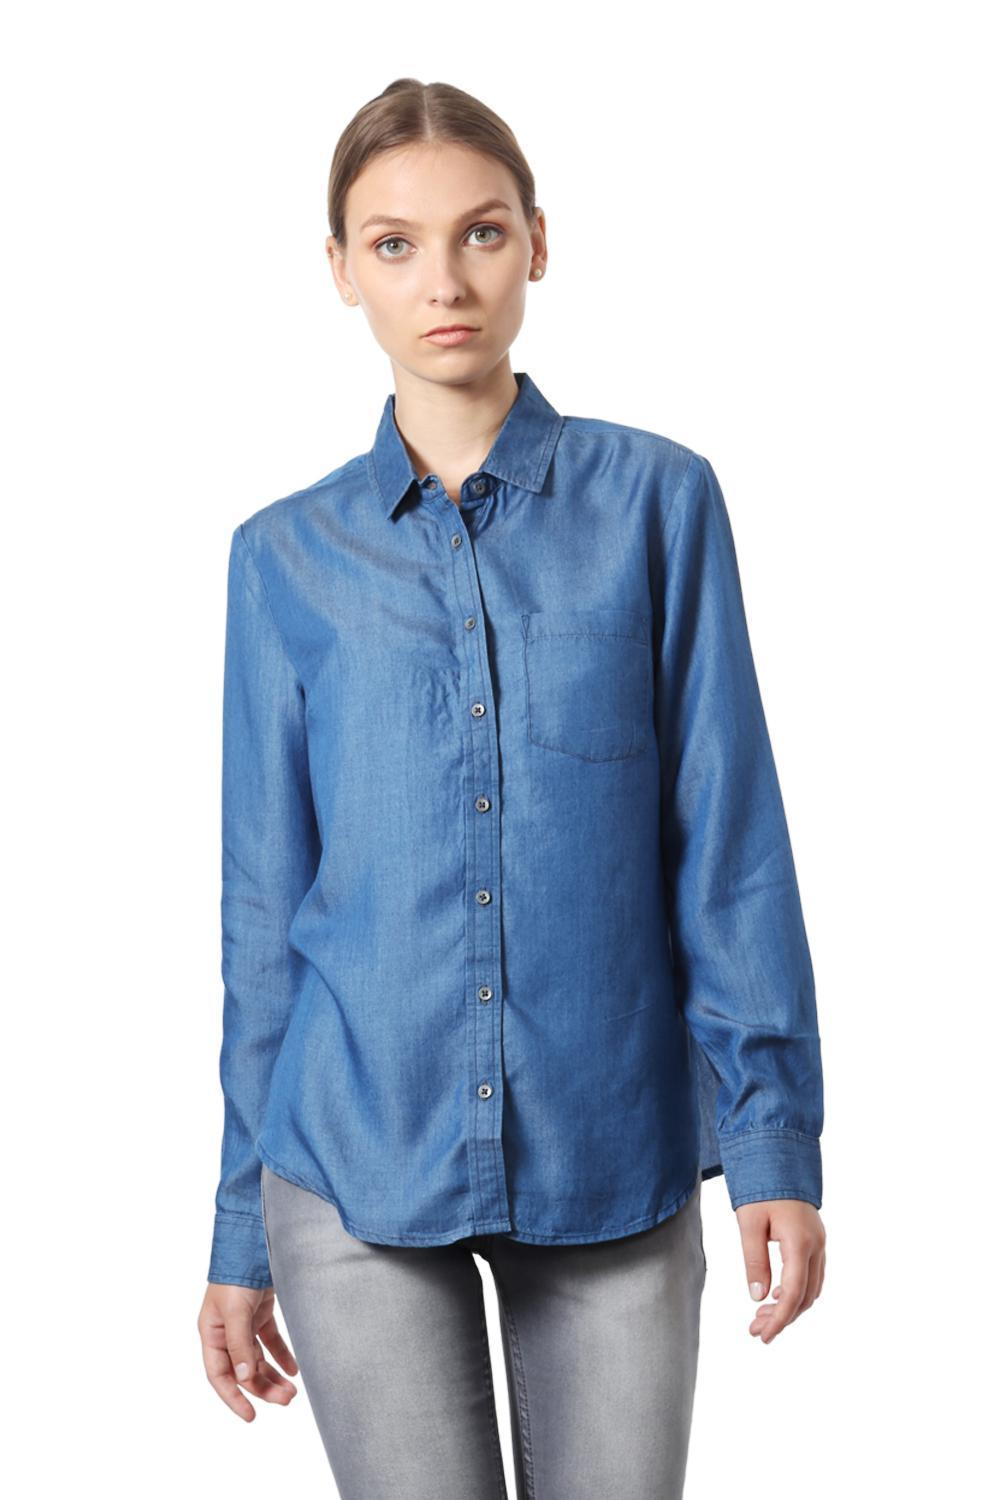 524f922a8ca8 Solly Shirts & Blouses, Allen Solly Blue Shirt for Women at Allensolly.com